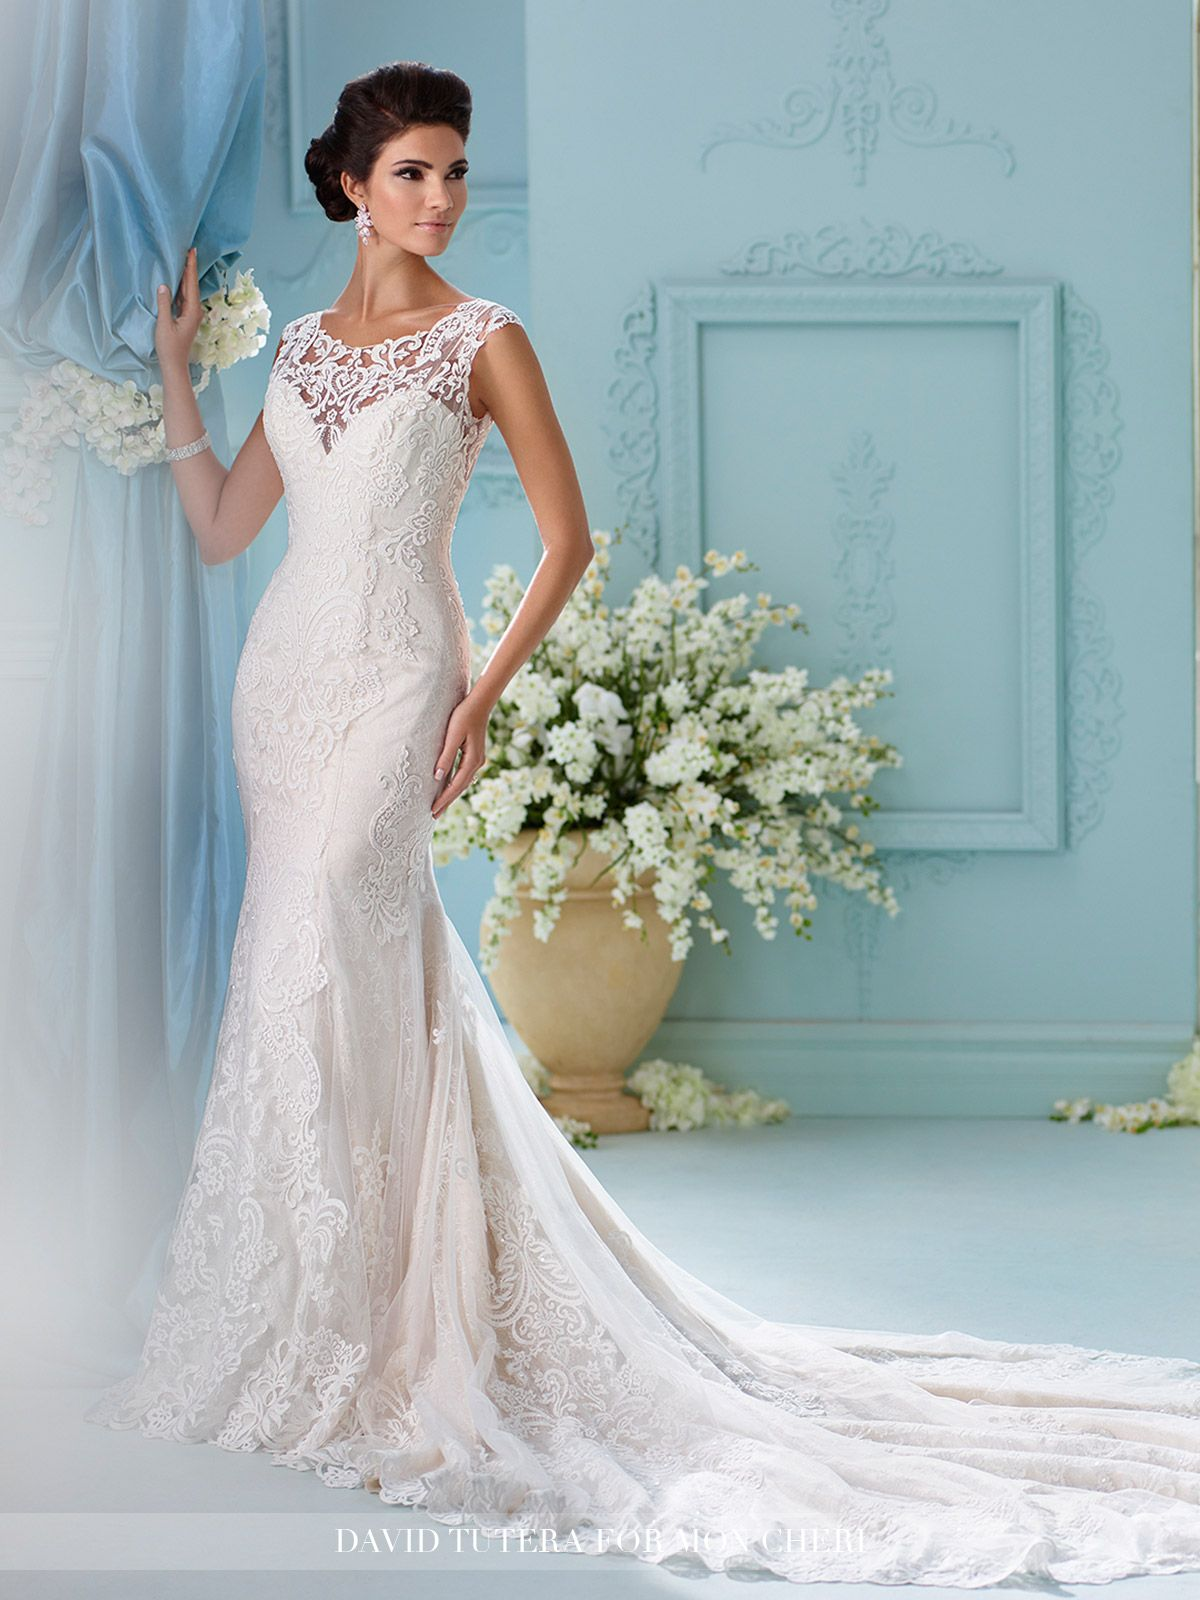 Lace Fit & Flare Wedding Dress With A Sweetheart Neckline-216242 ...